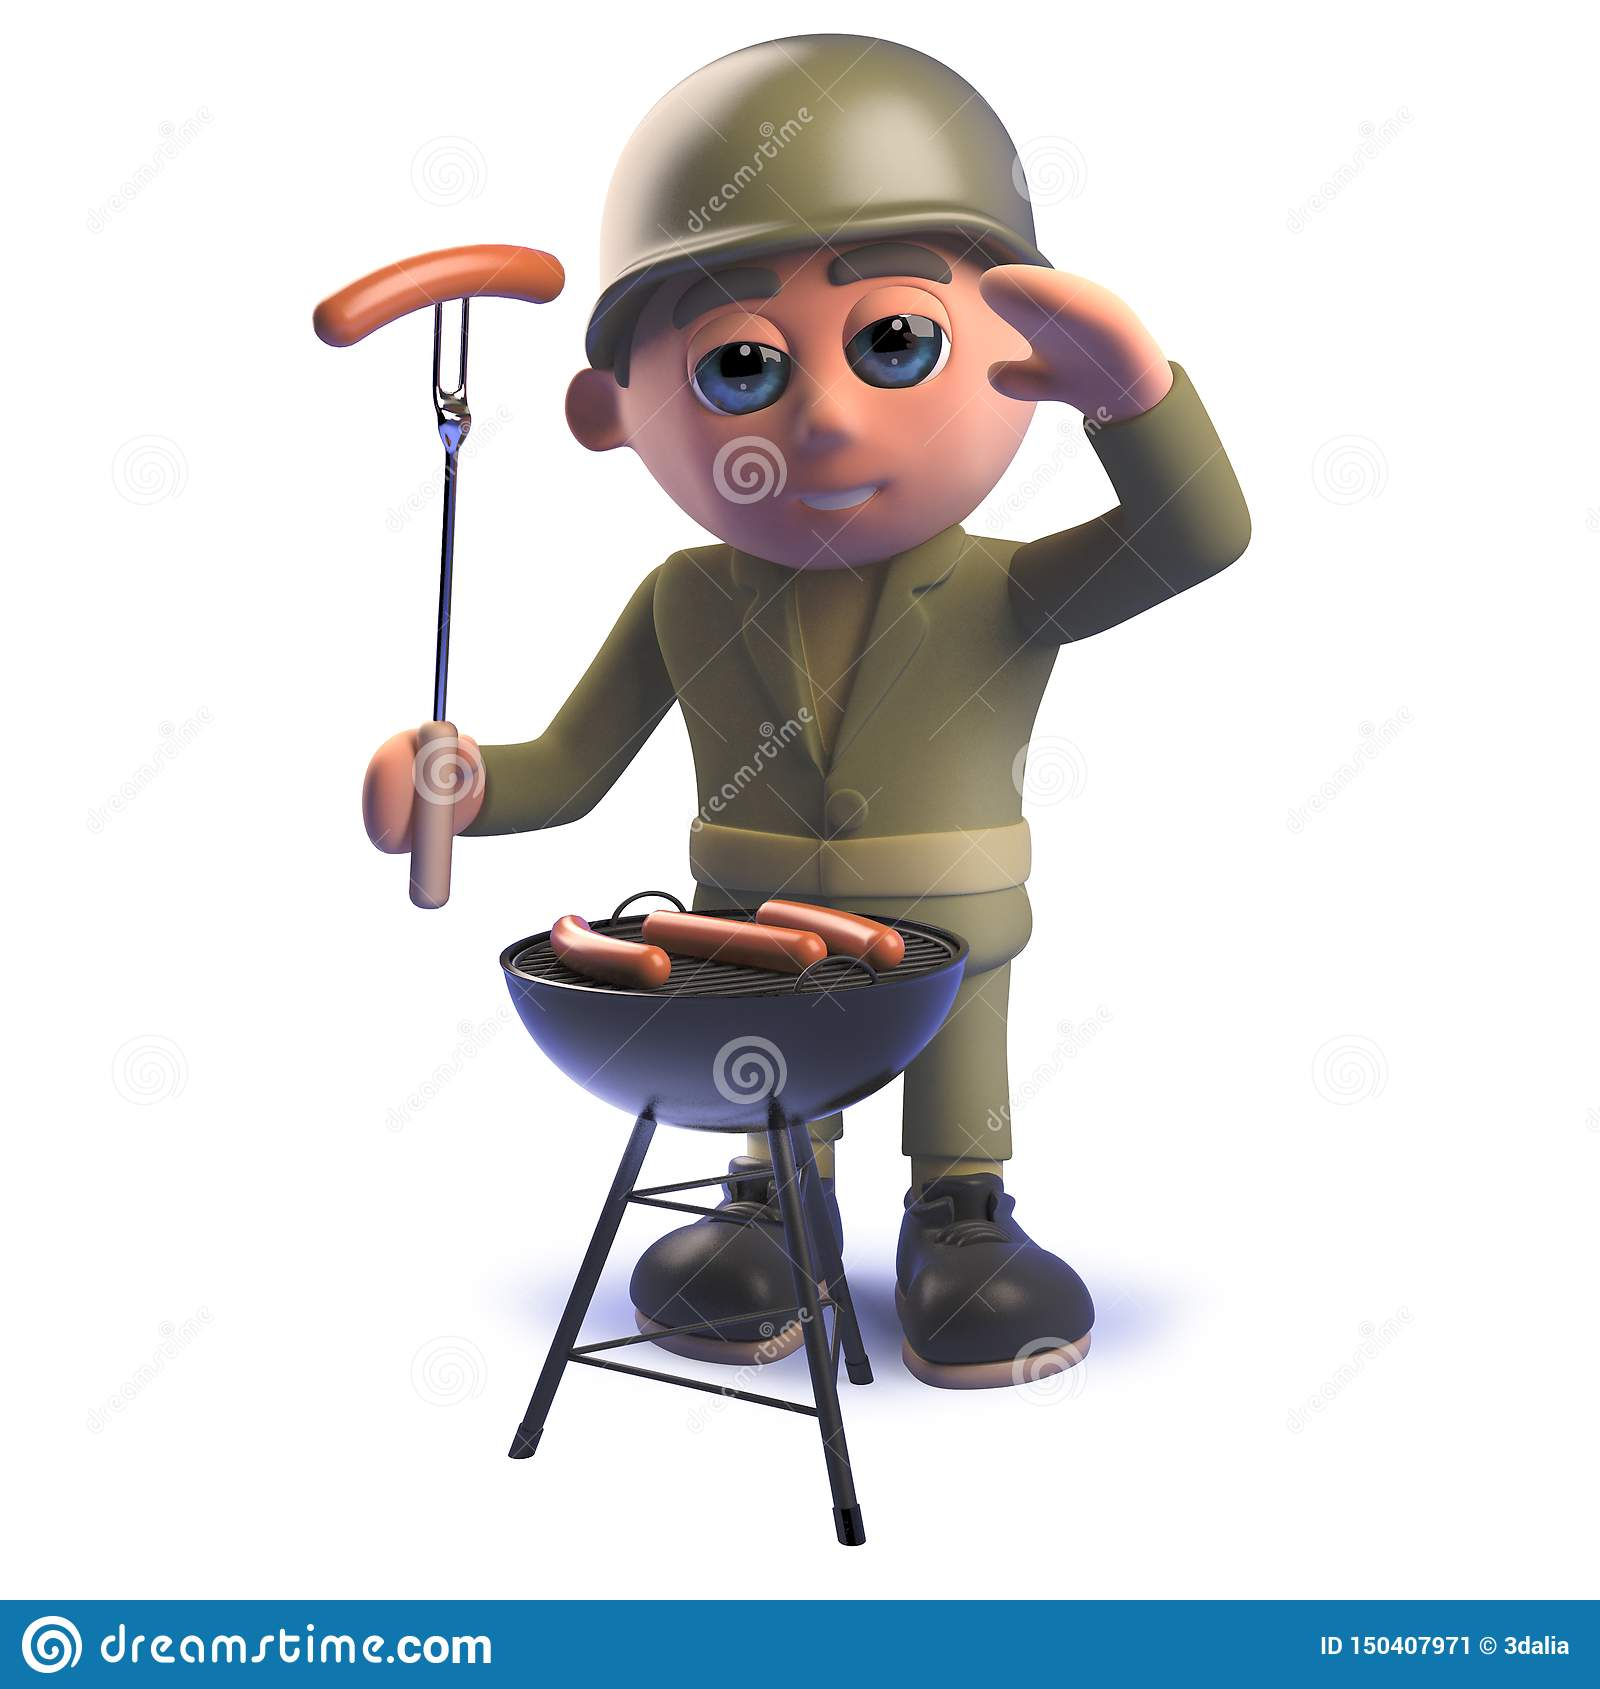 Cartoon 3d army soldier character cooking a barbecue bbq